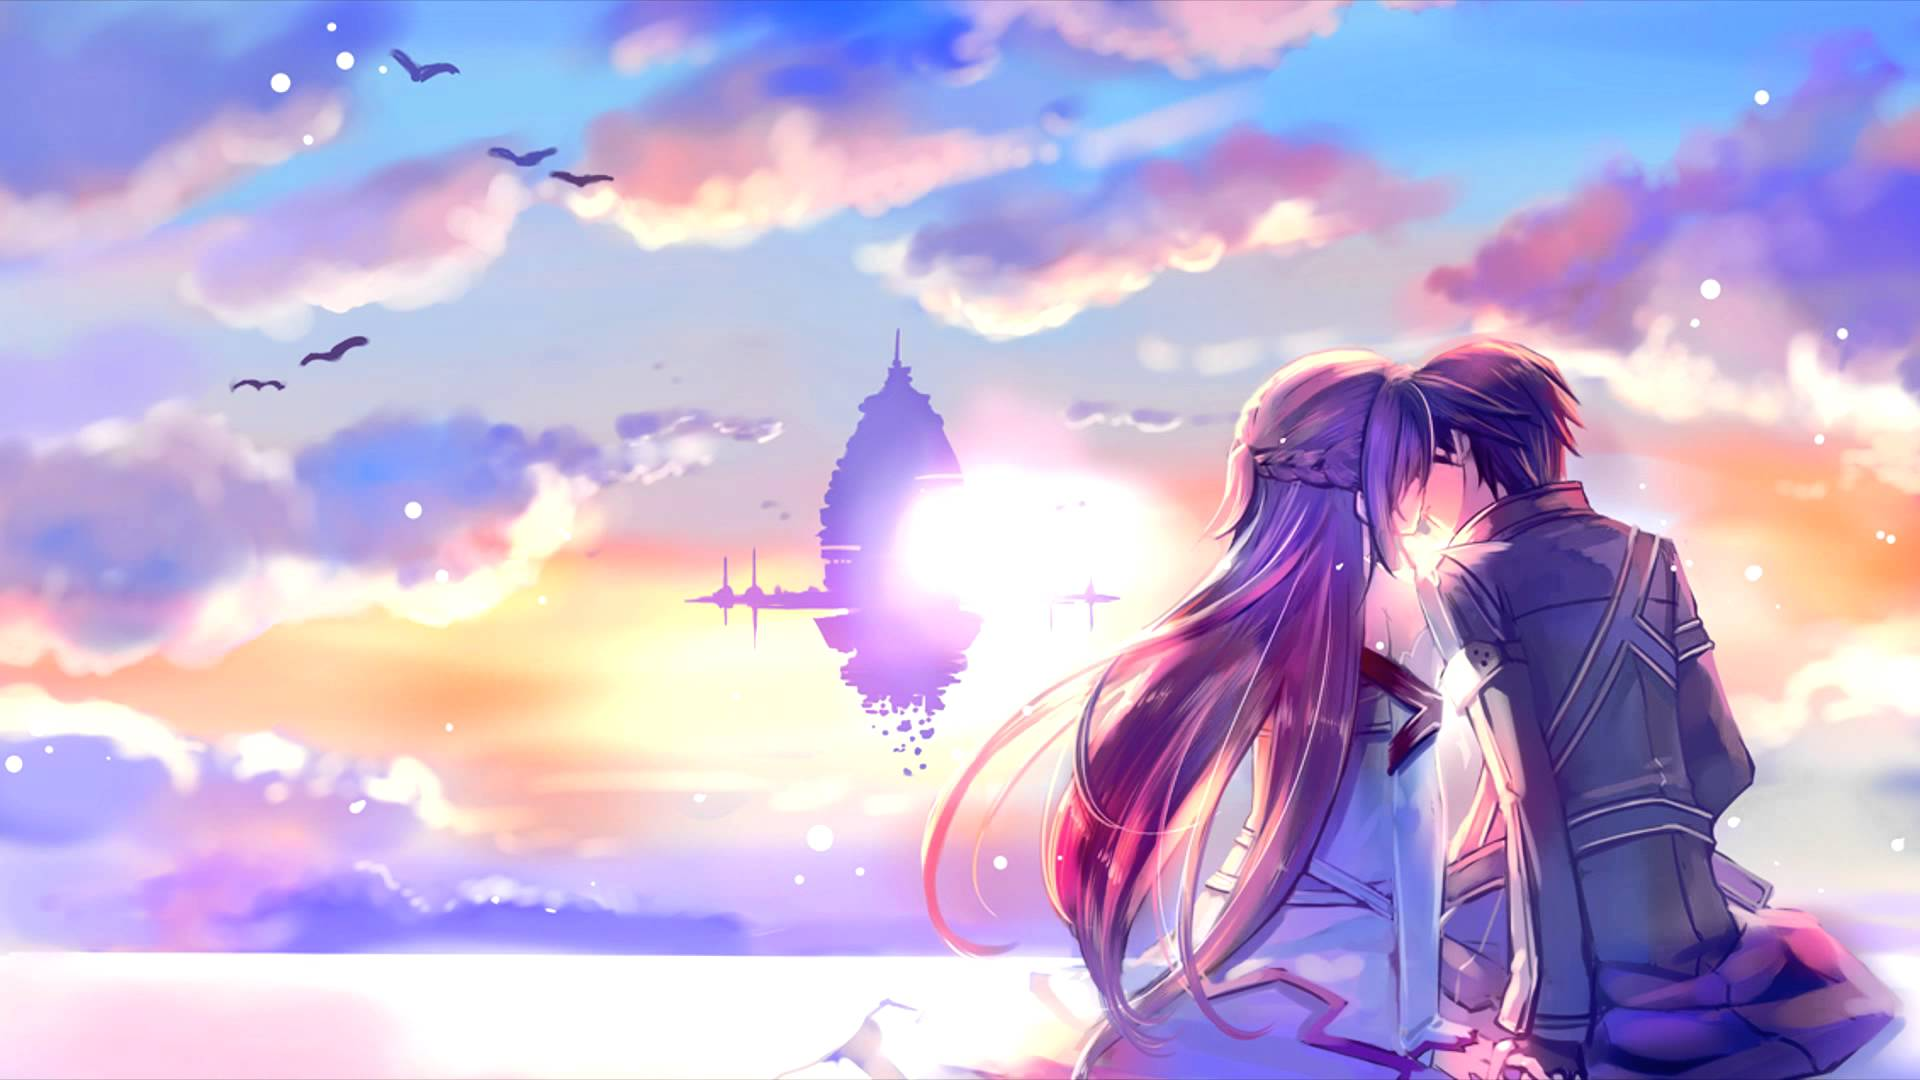 love anime wallpaper hd - photo #19